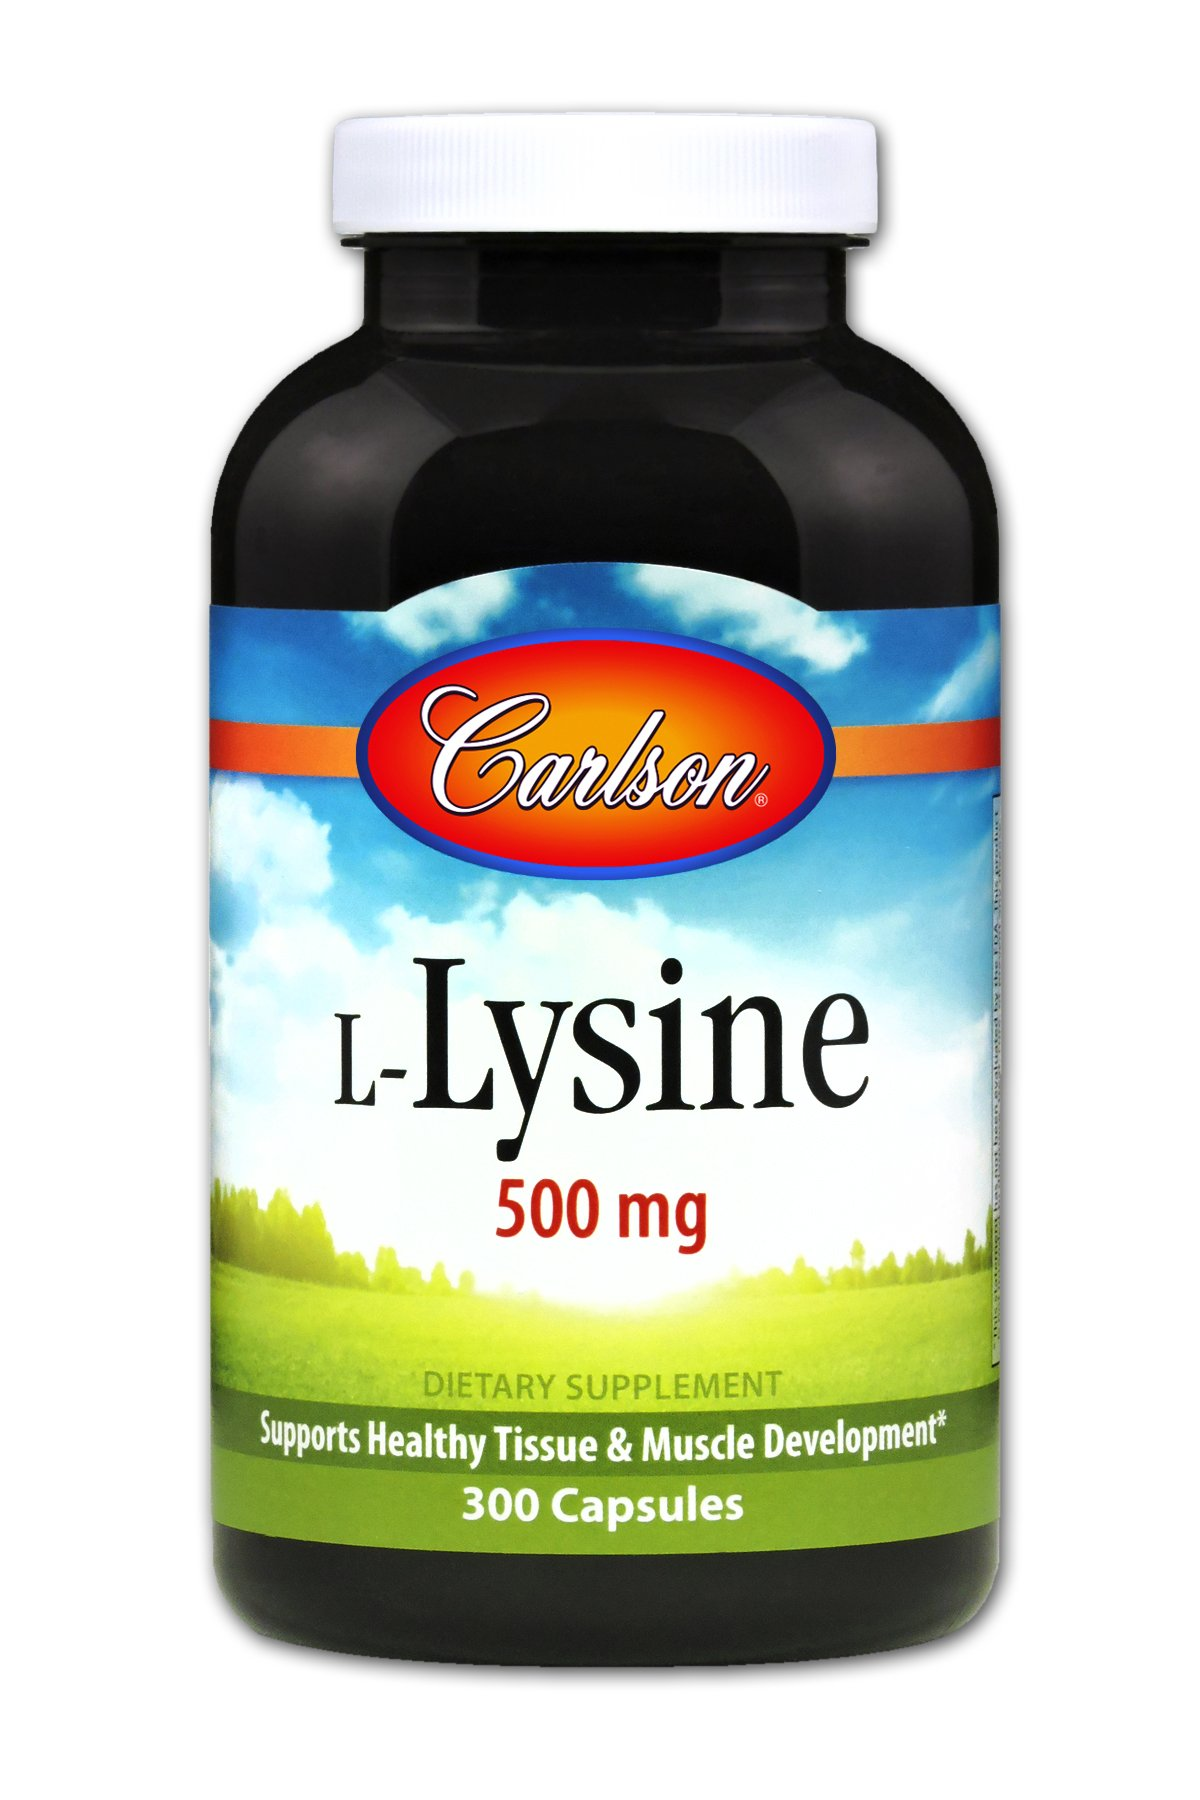 Carlson - L-Lysine, 500 mg, Supports Healthy Tissue & Muscle Development, 300 capsules by Carlson